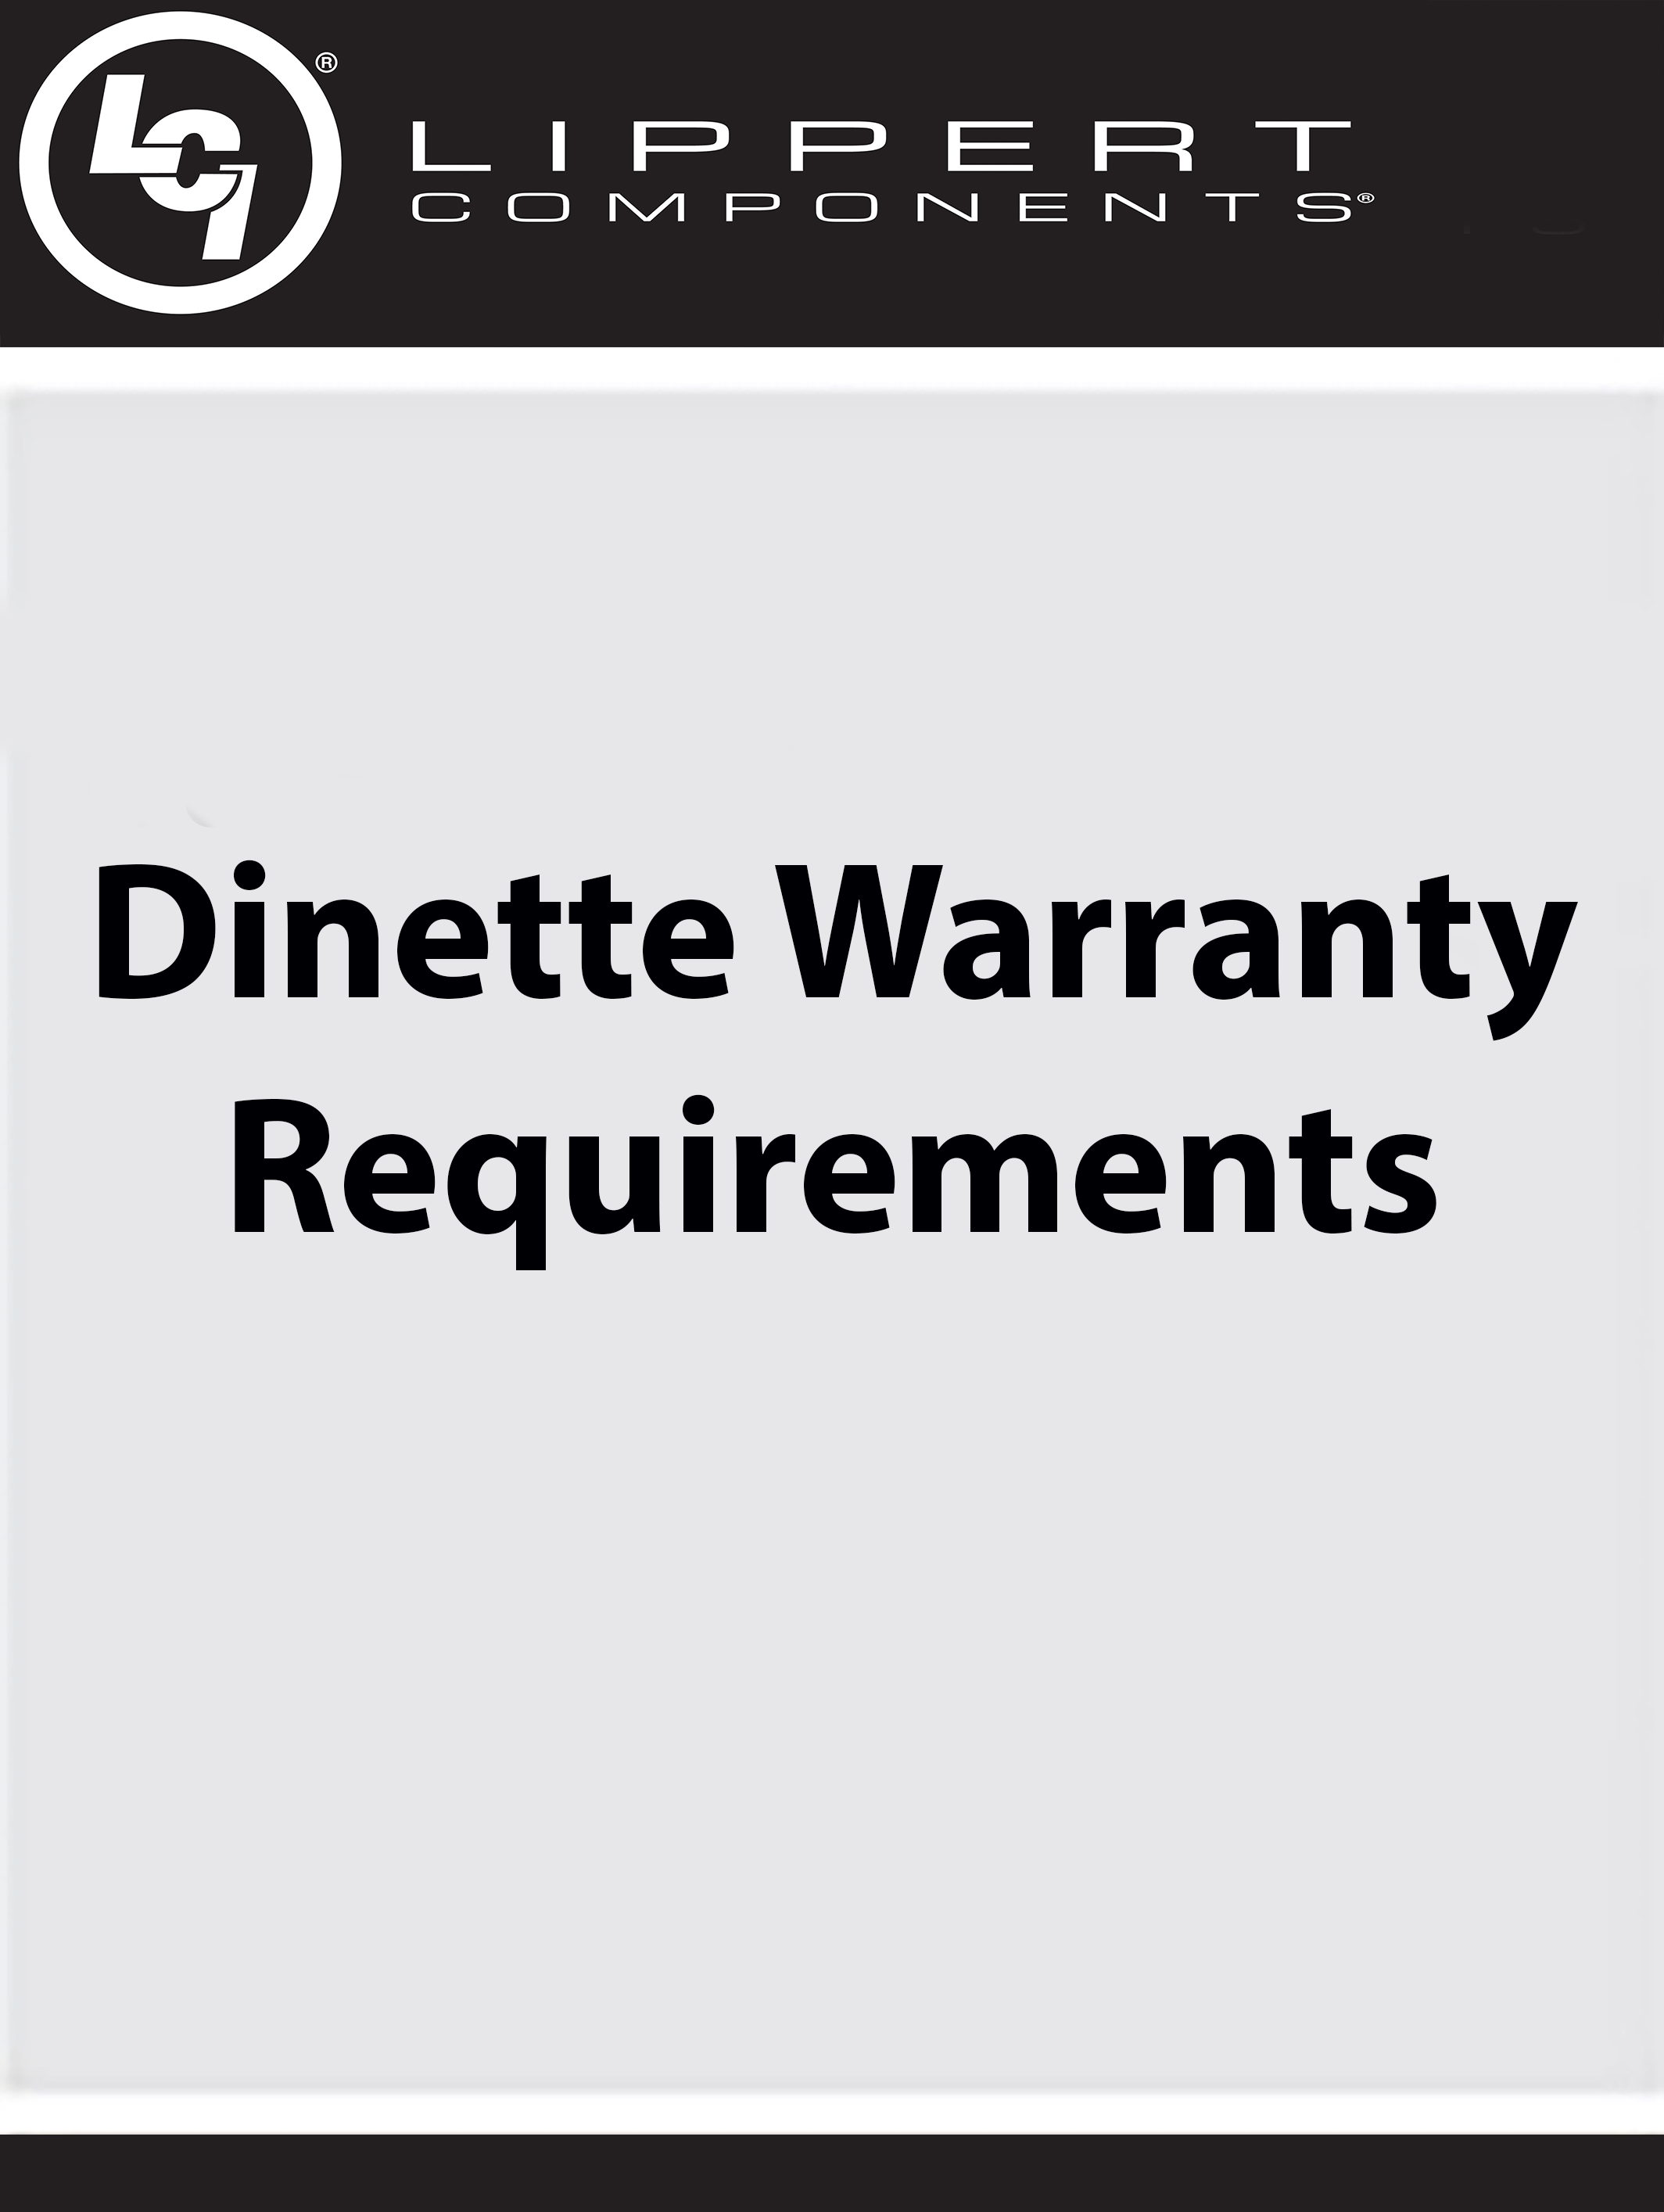 Dinette Warranty Requirements